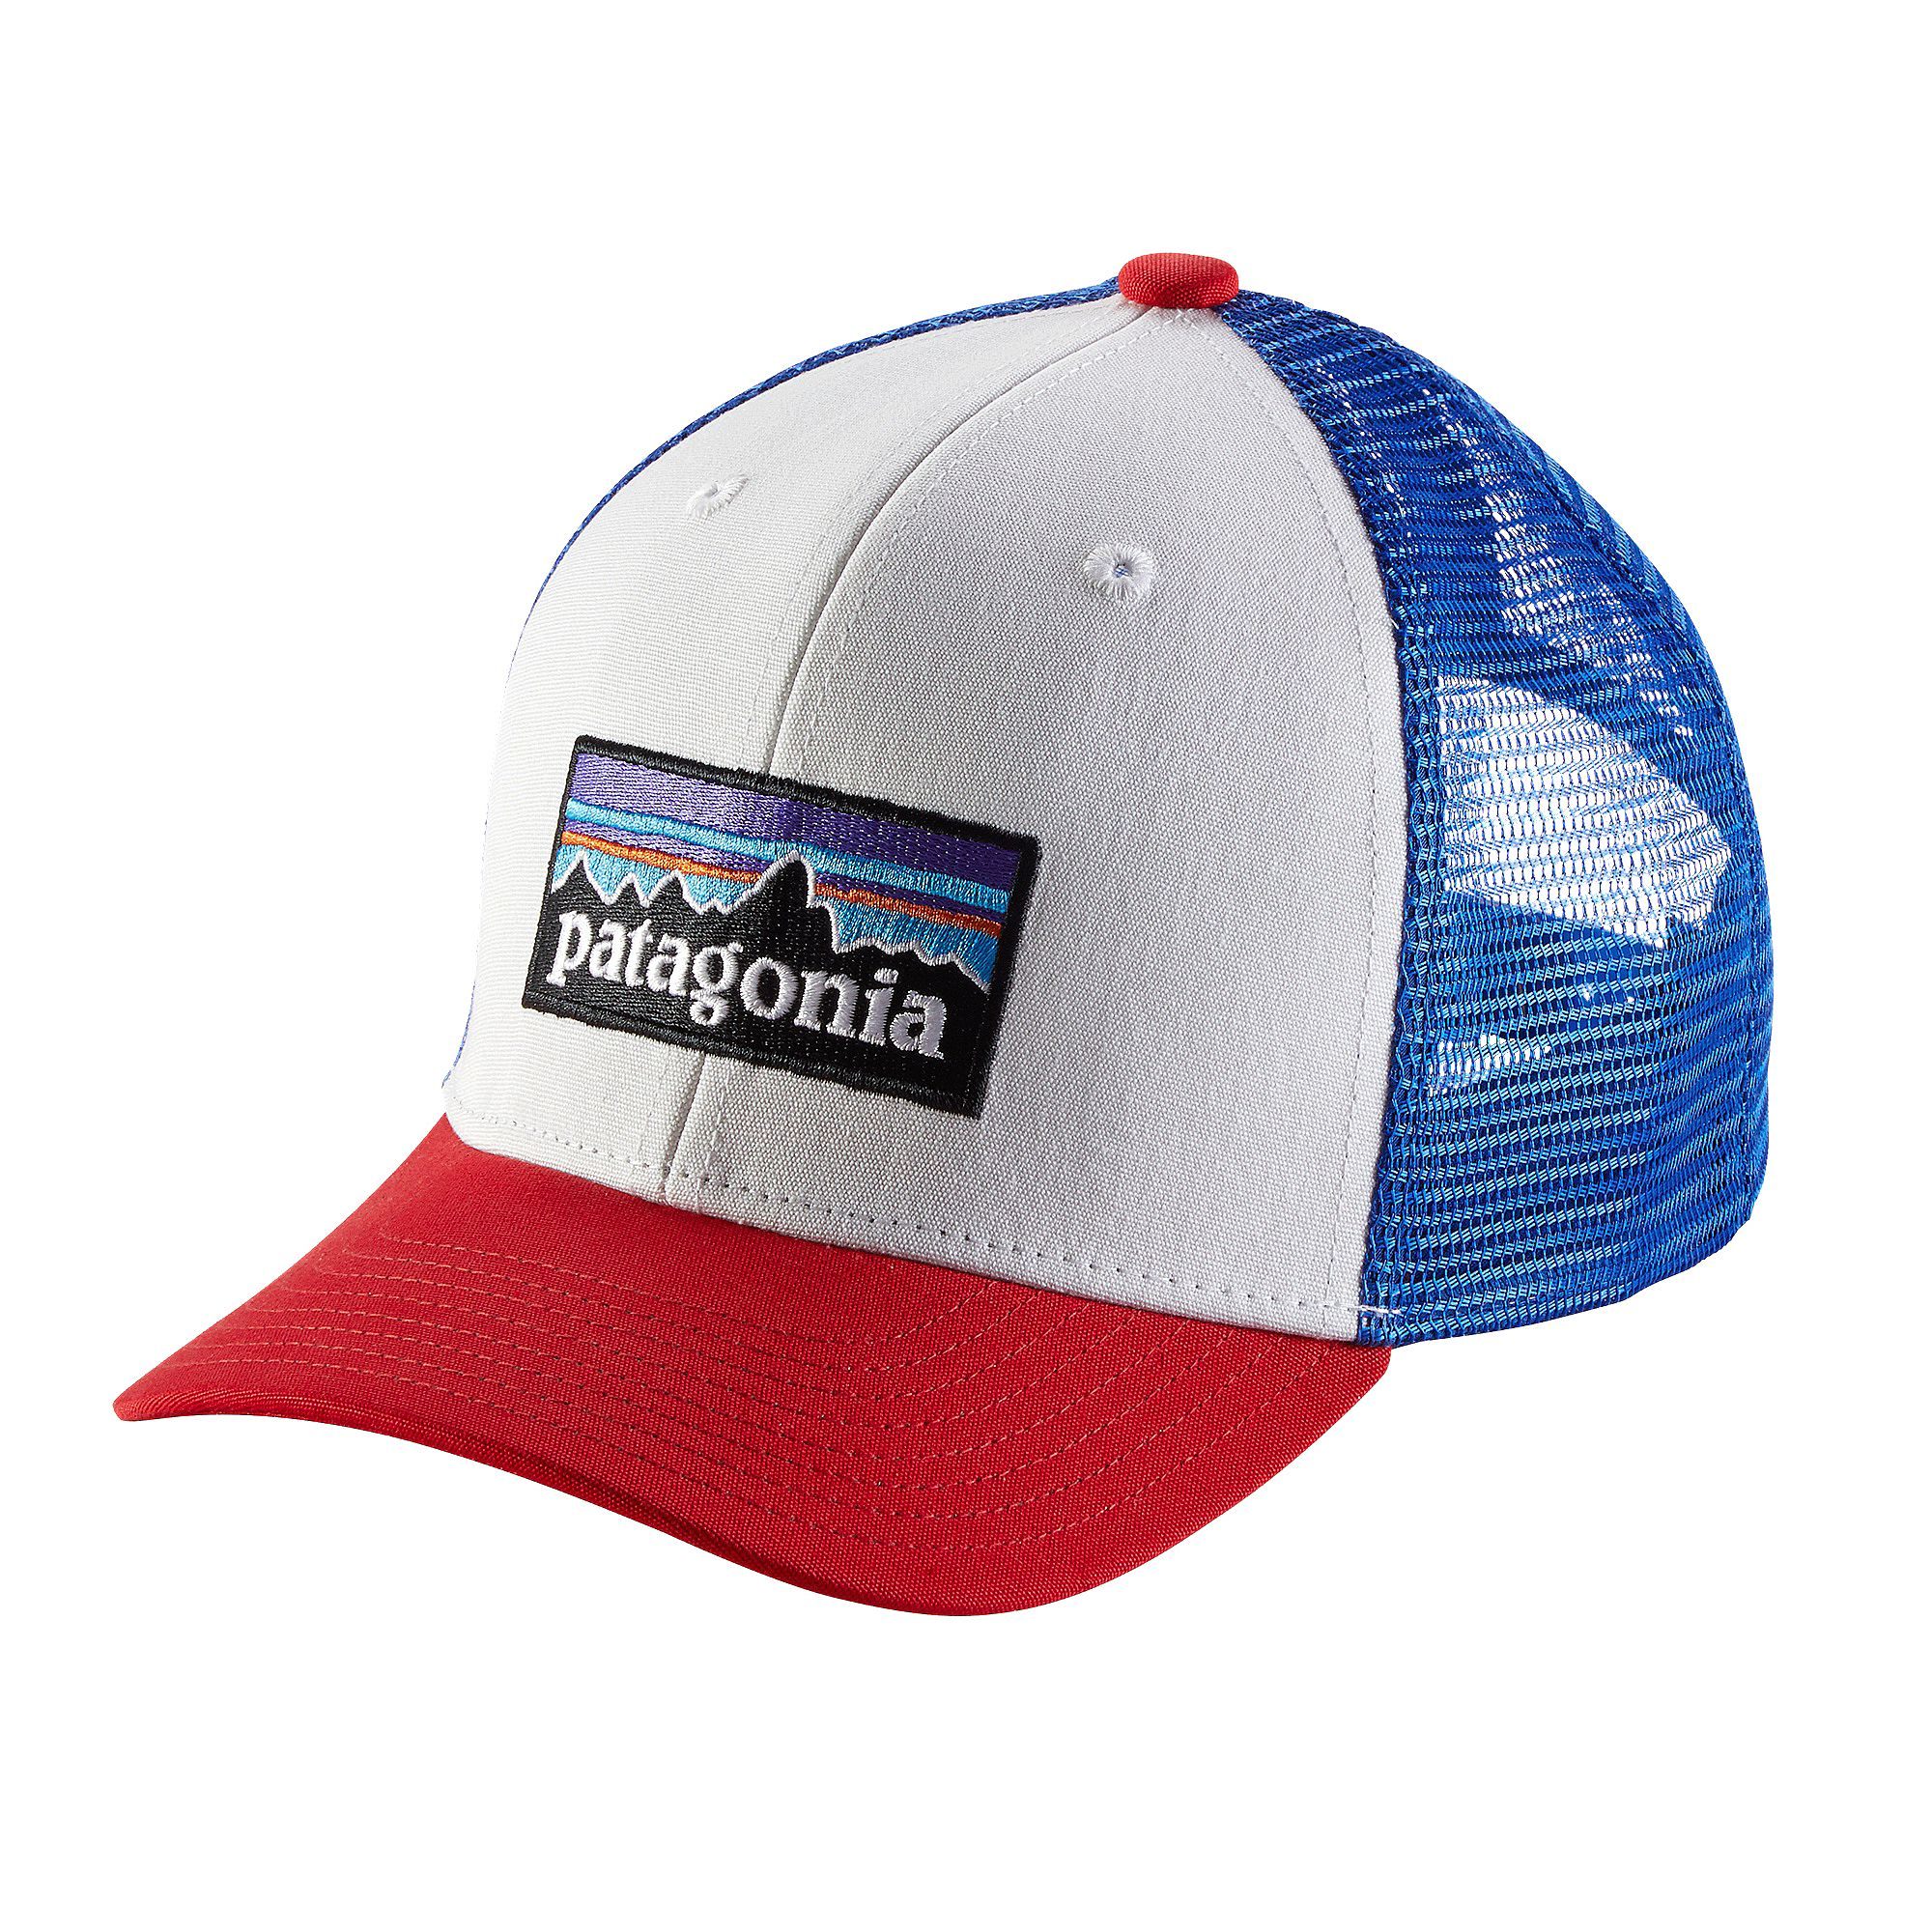 2a36665b6883 Patagonia Kid's Trucker Hat Summer 2019 pour € 25.05 | Basecamp-shop